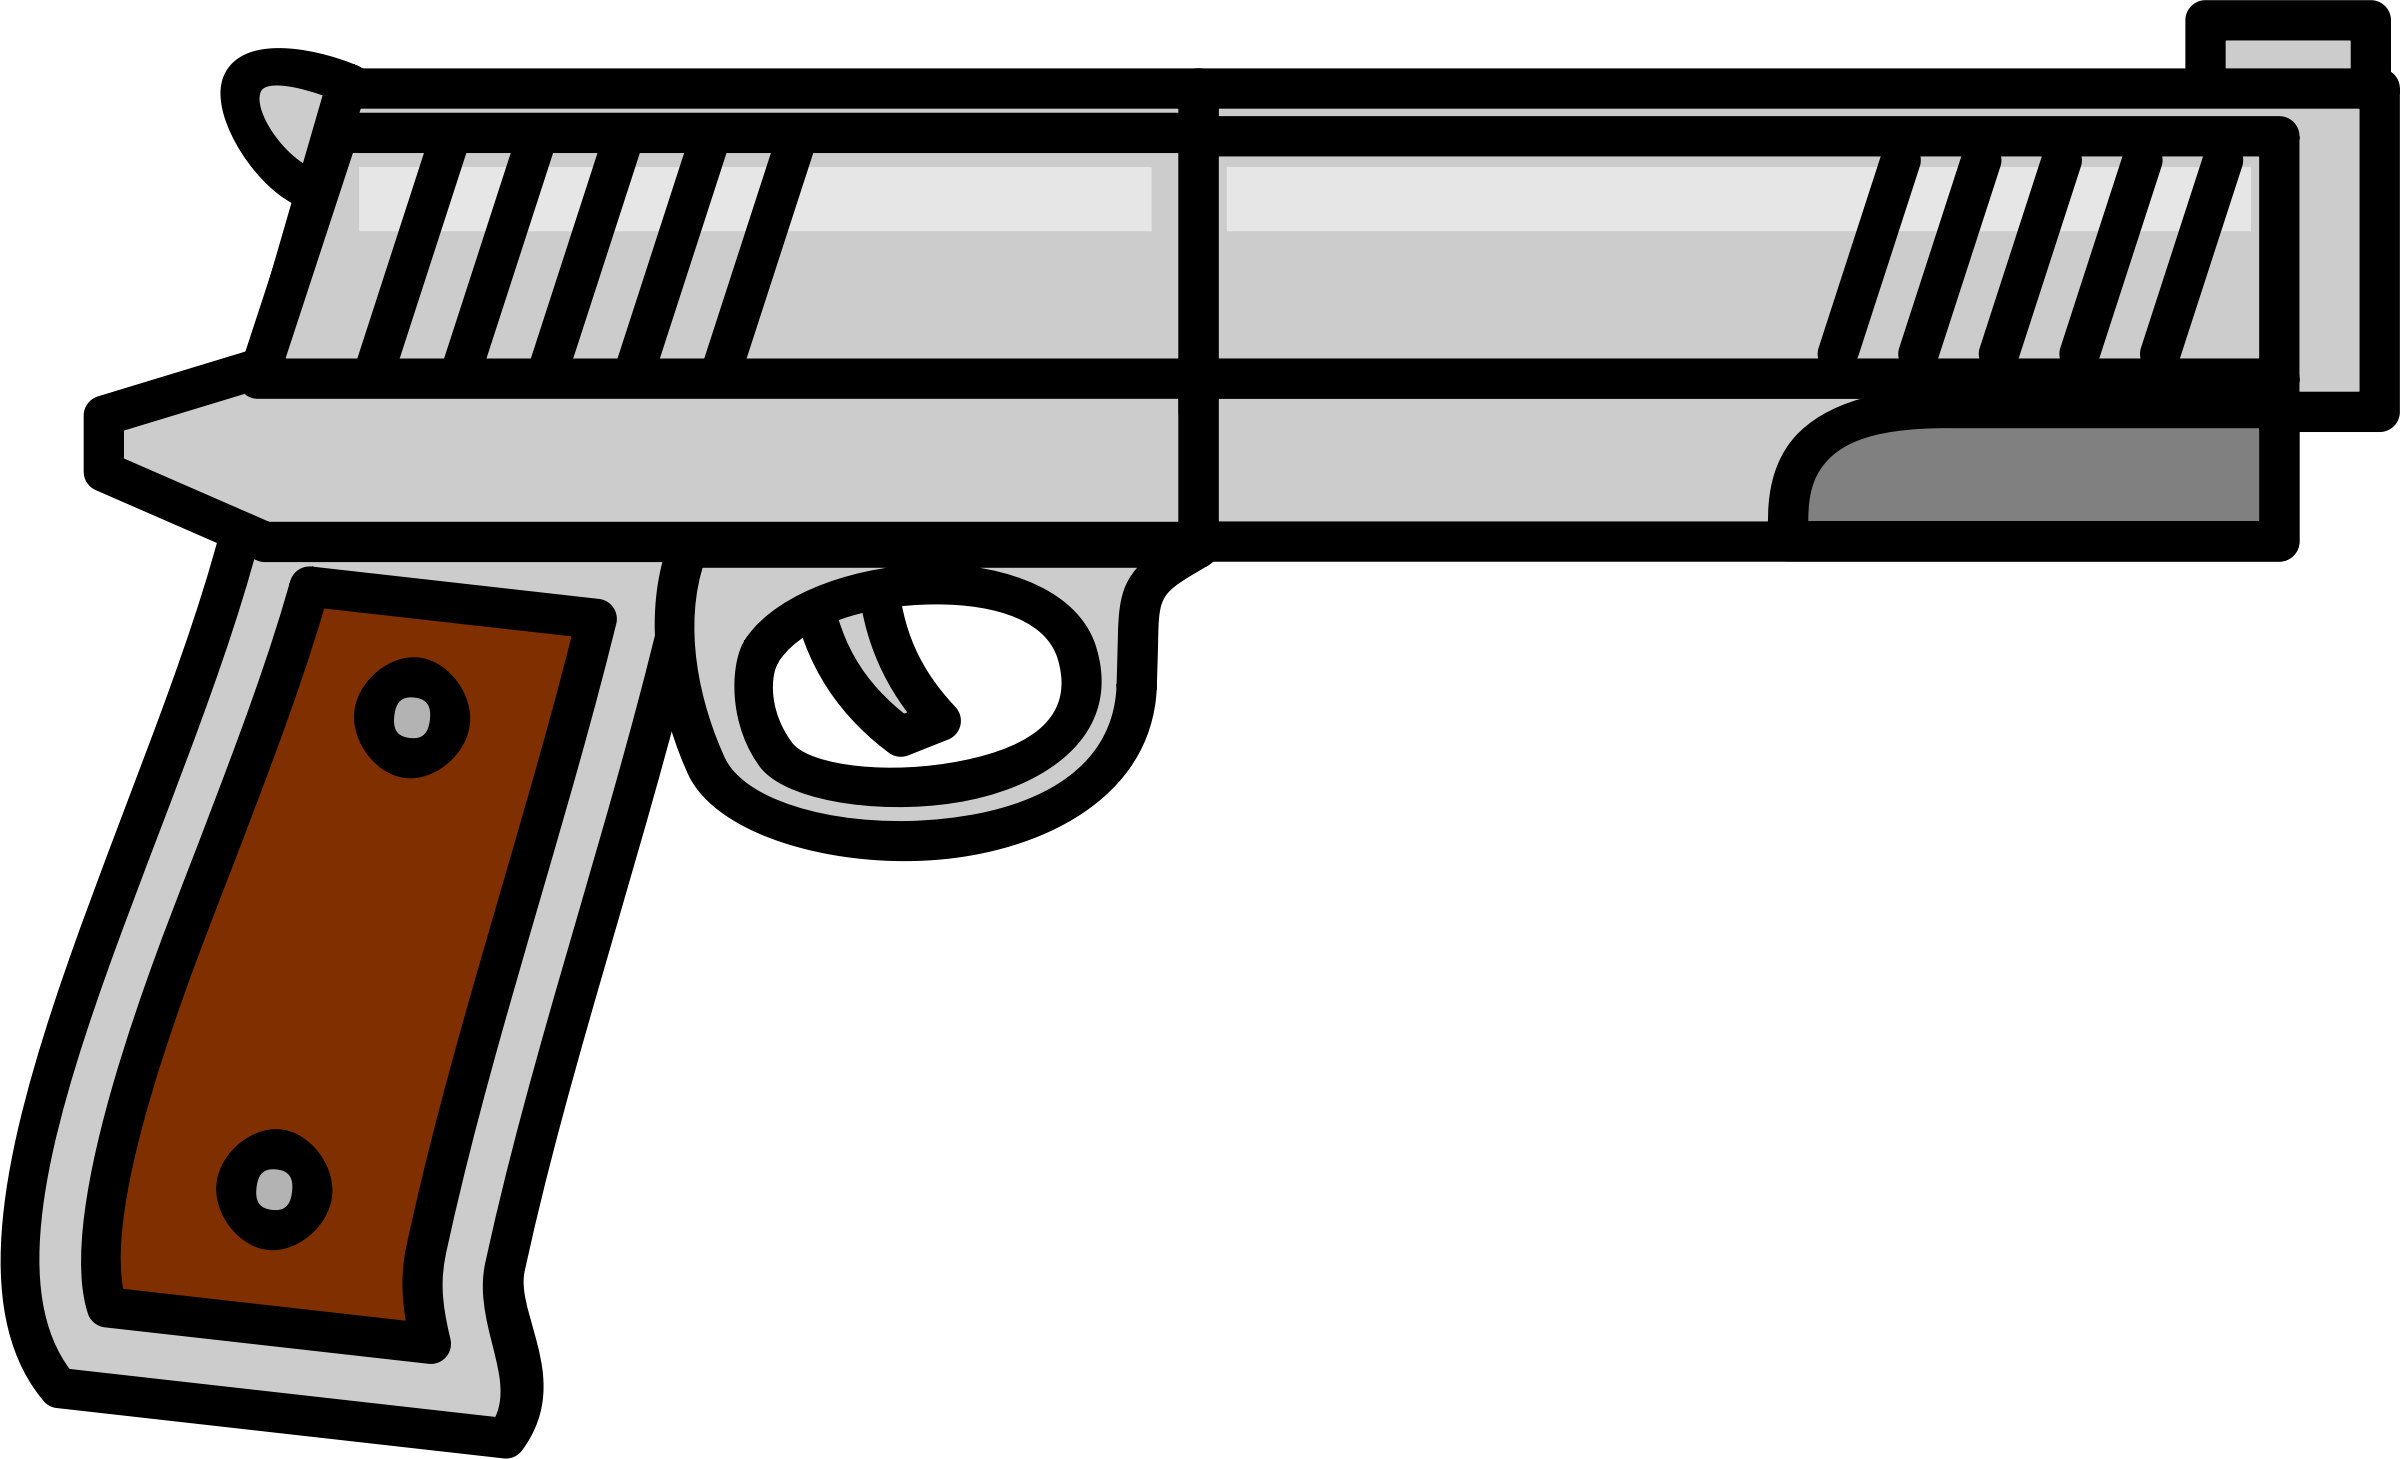 Firearms . Clipart gun school shooting